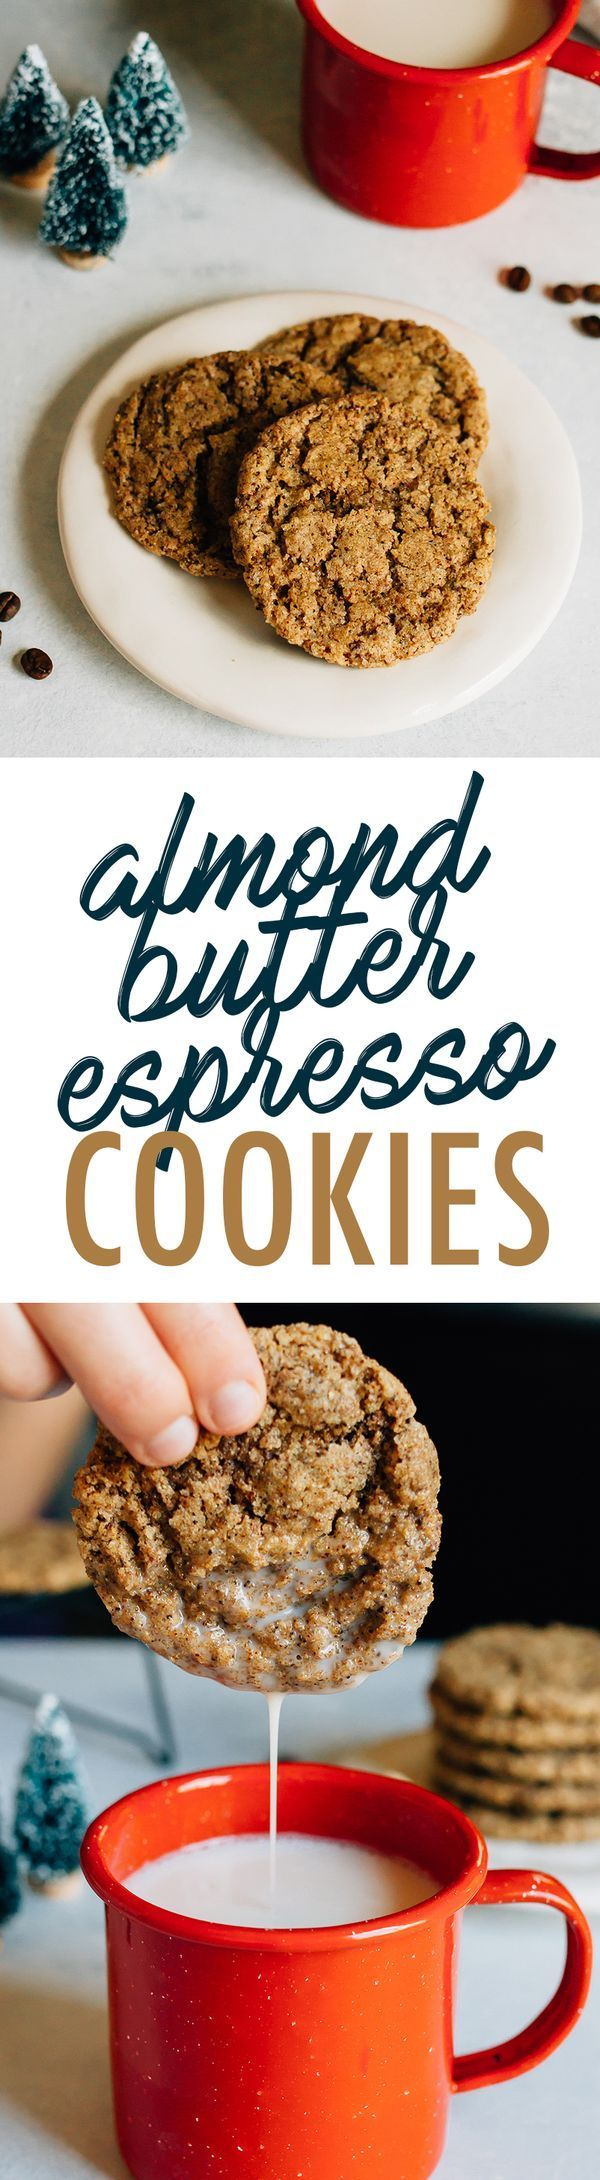 The BEST almond butter espresso cookies! Only six ingredients. Plus, they're flourless, vegan and gluten-free!